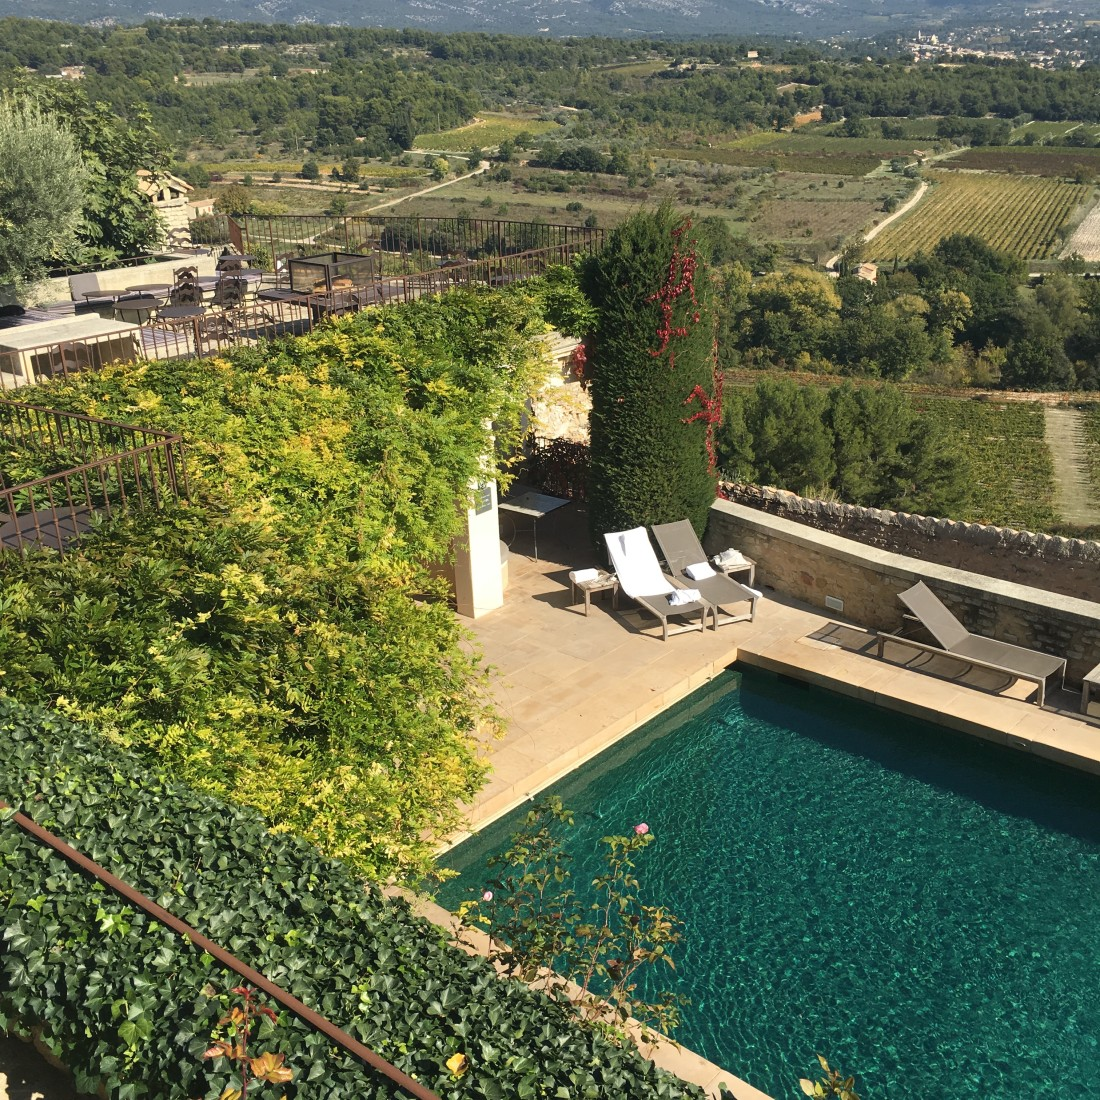 Hotel Crillon Le Brave, Provence, Where to stay in Provence